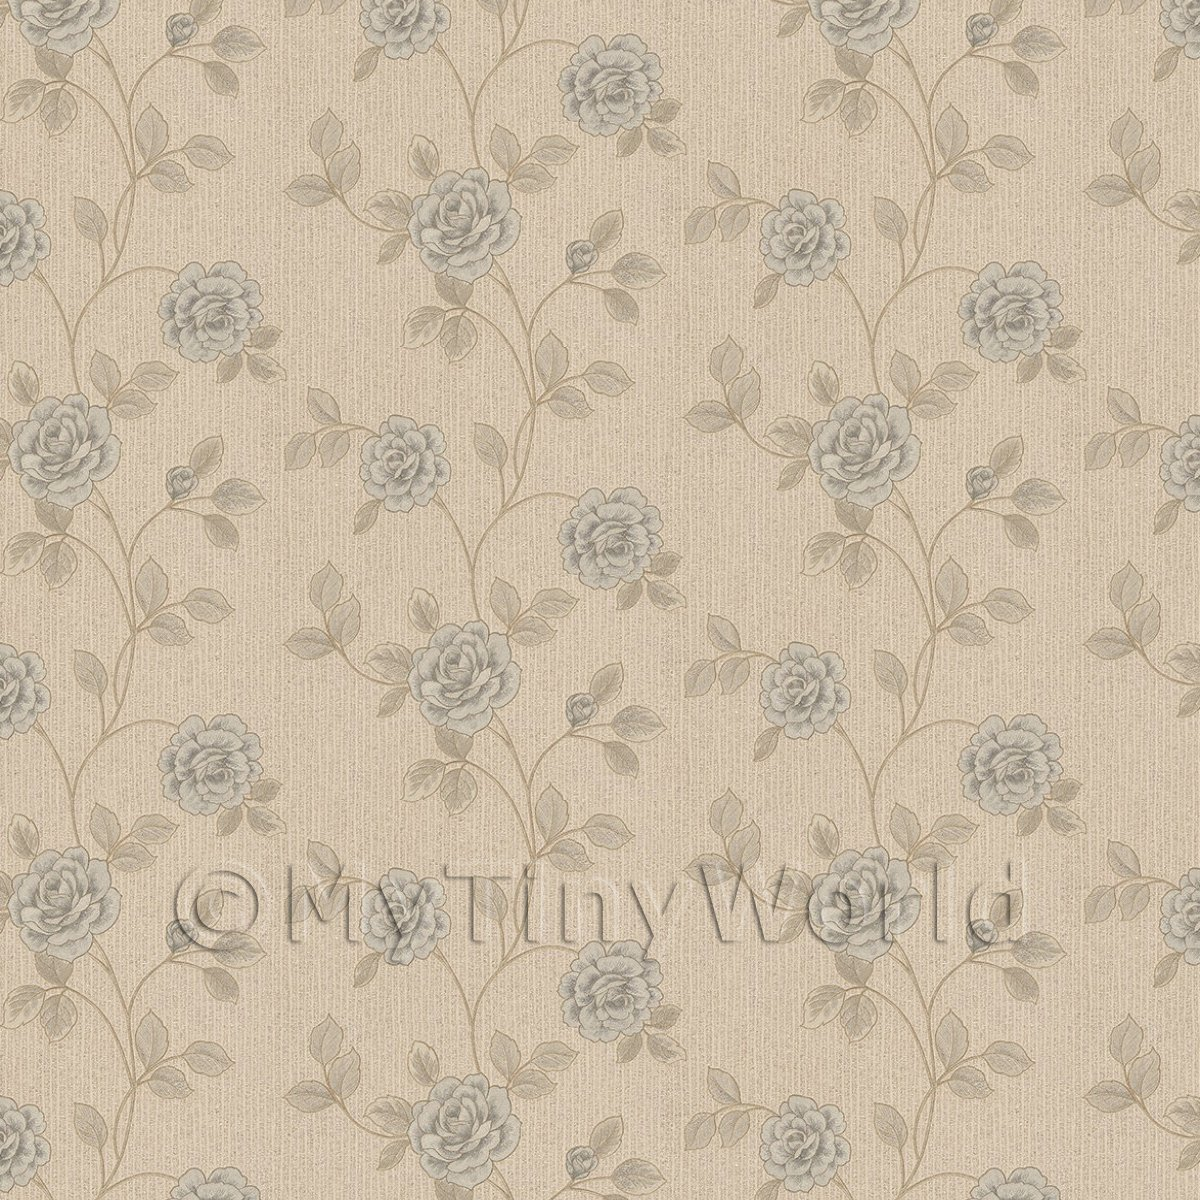 Pack of 5 Dolls House Powder Blue Climbing Rose Wallpaper Sheets